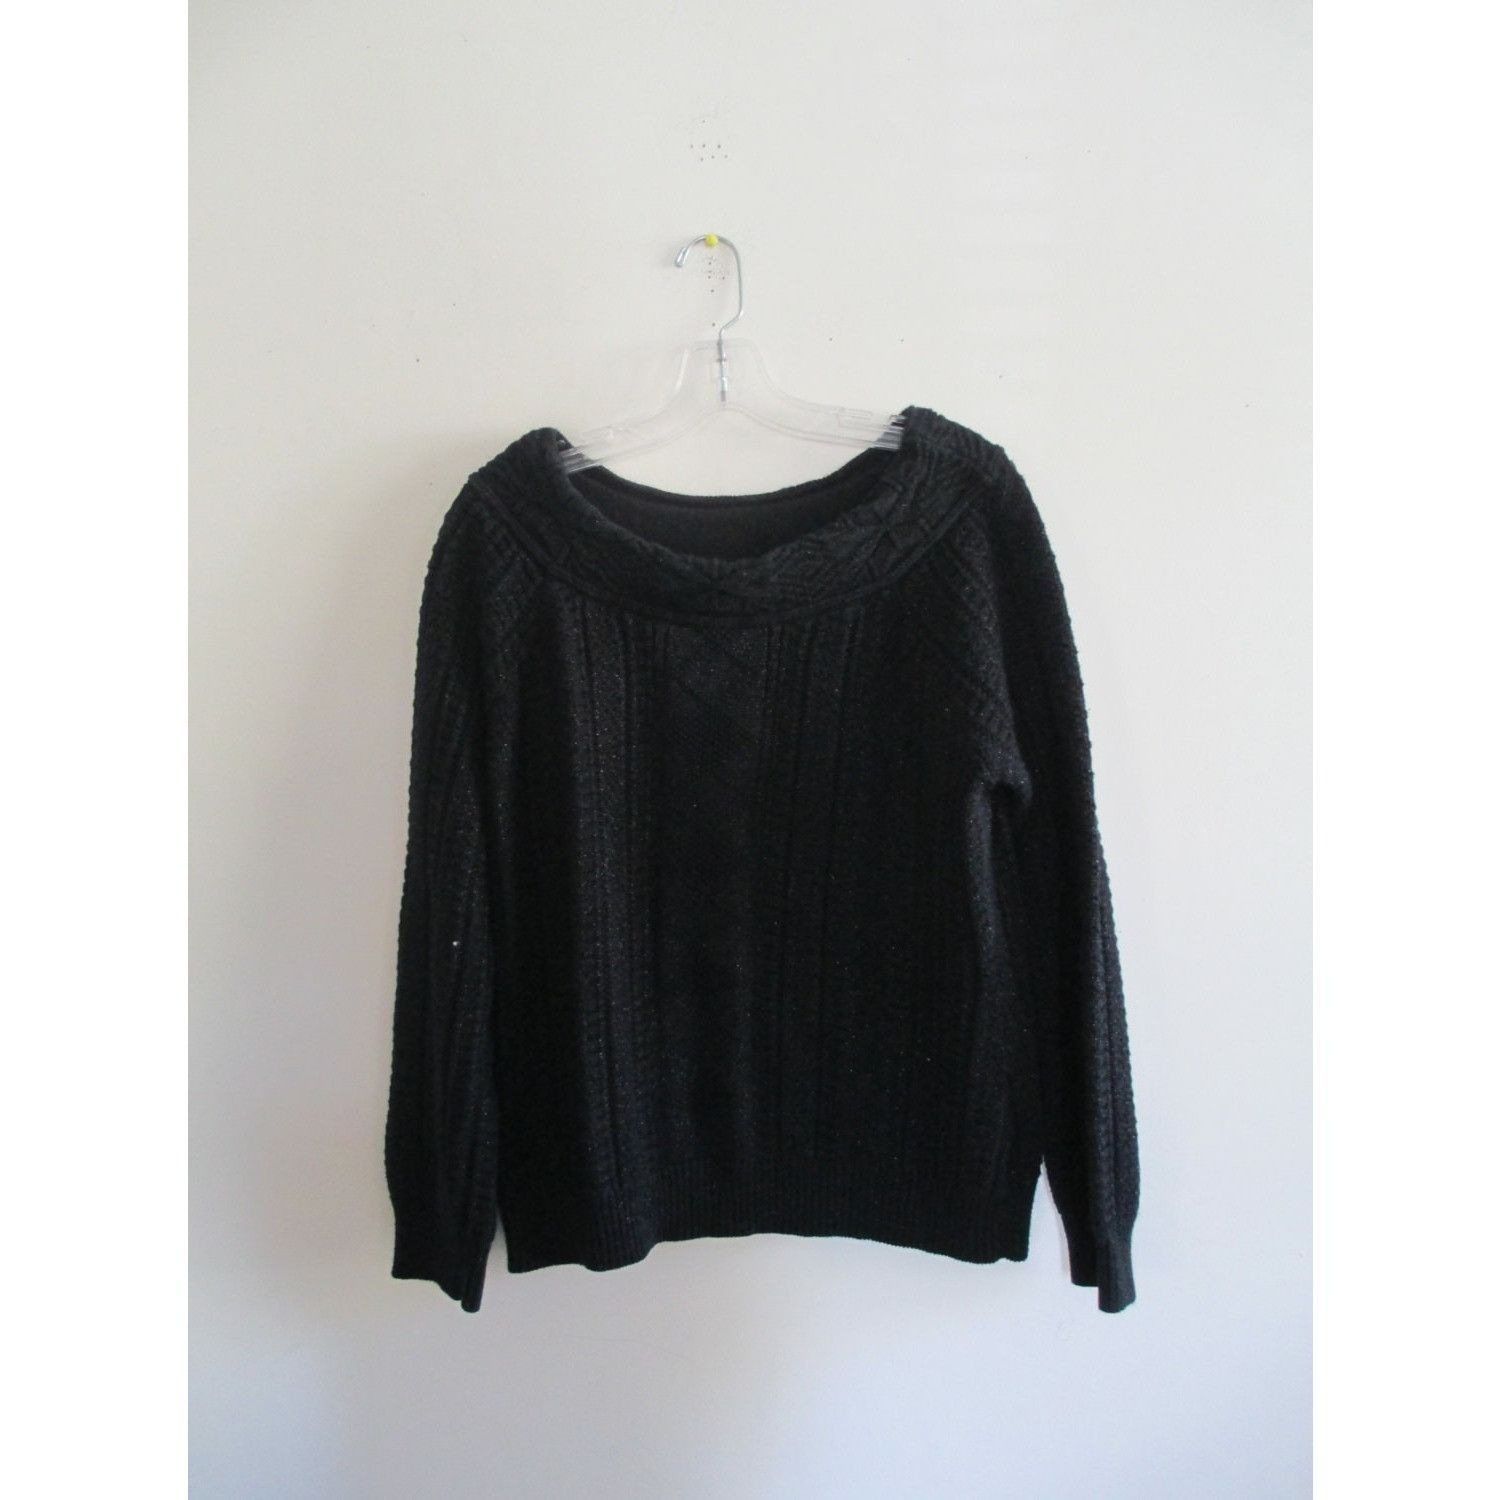 Vintage Ralph Lauren Black Metallic Cable Knit Sweater Sz Large ...